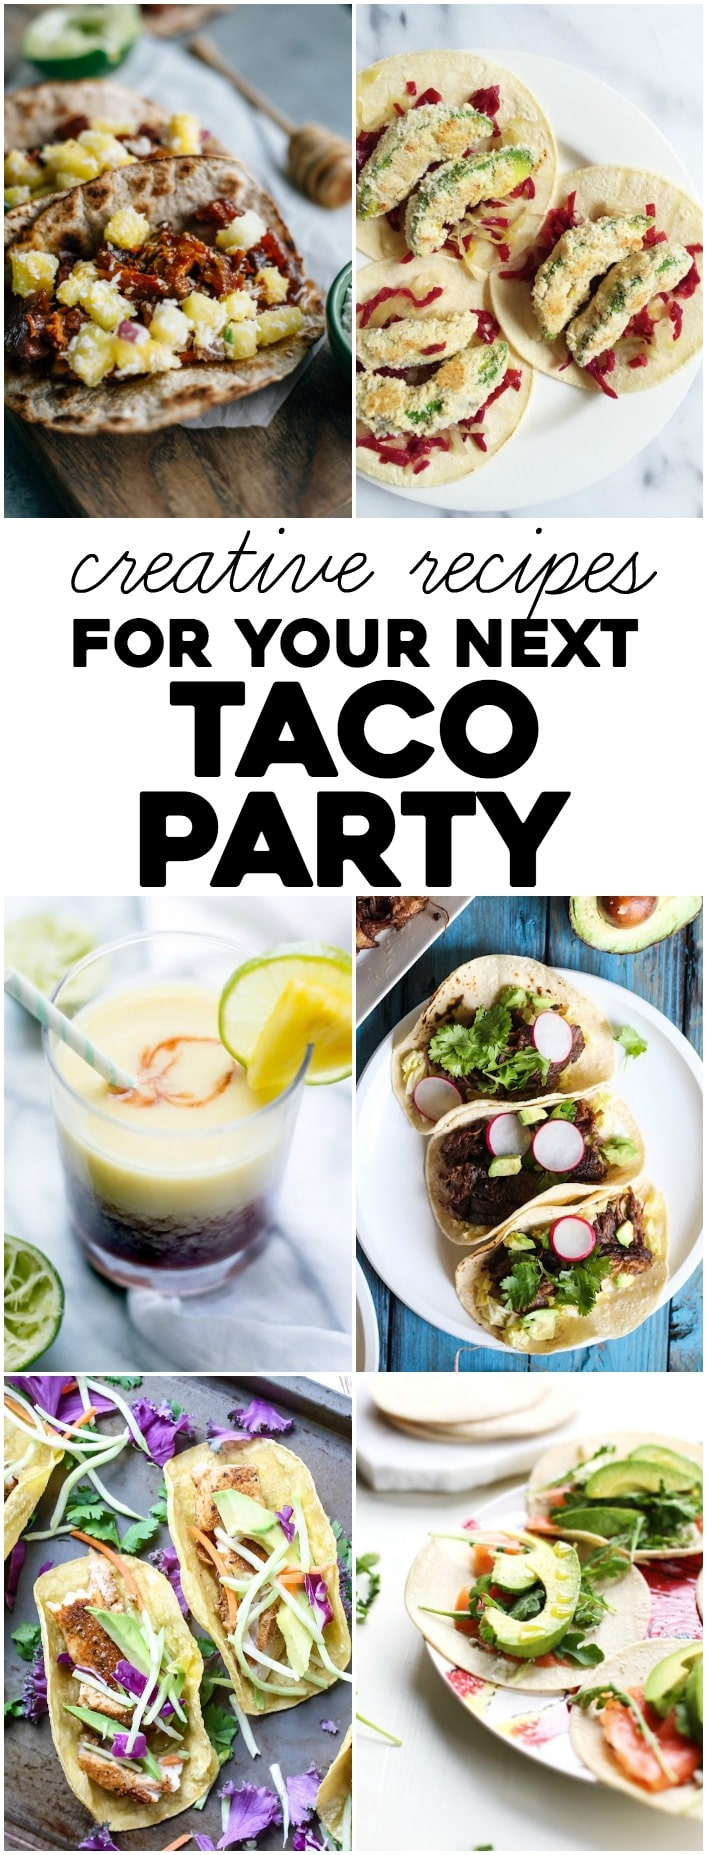 Try one (or all!) of these 6 recipes for your next taco night!